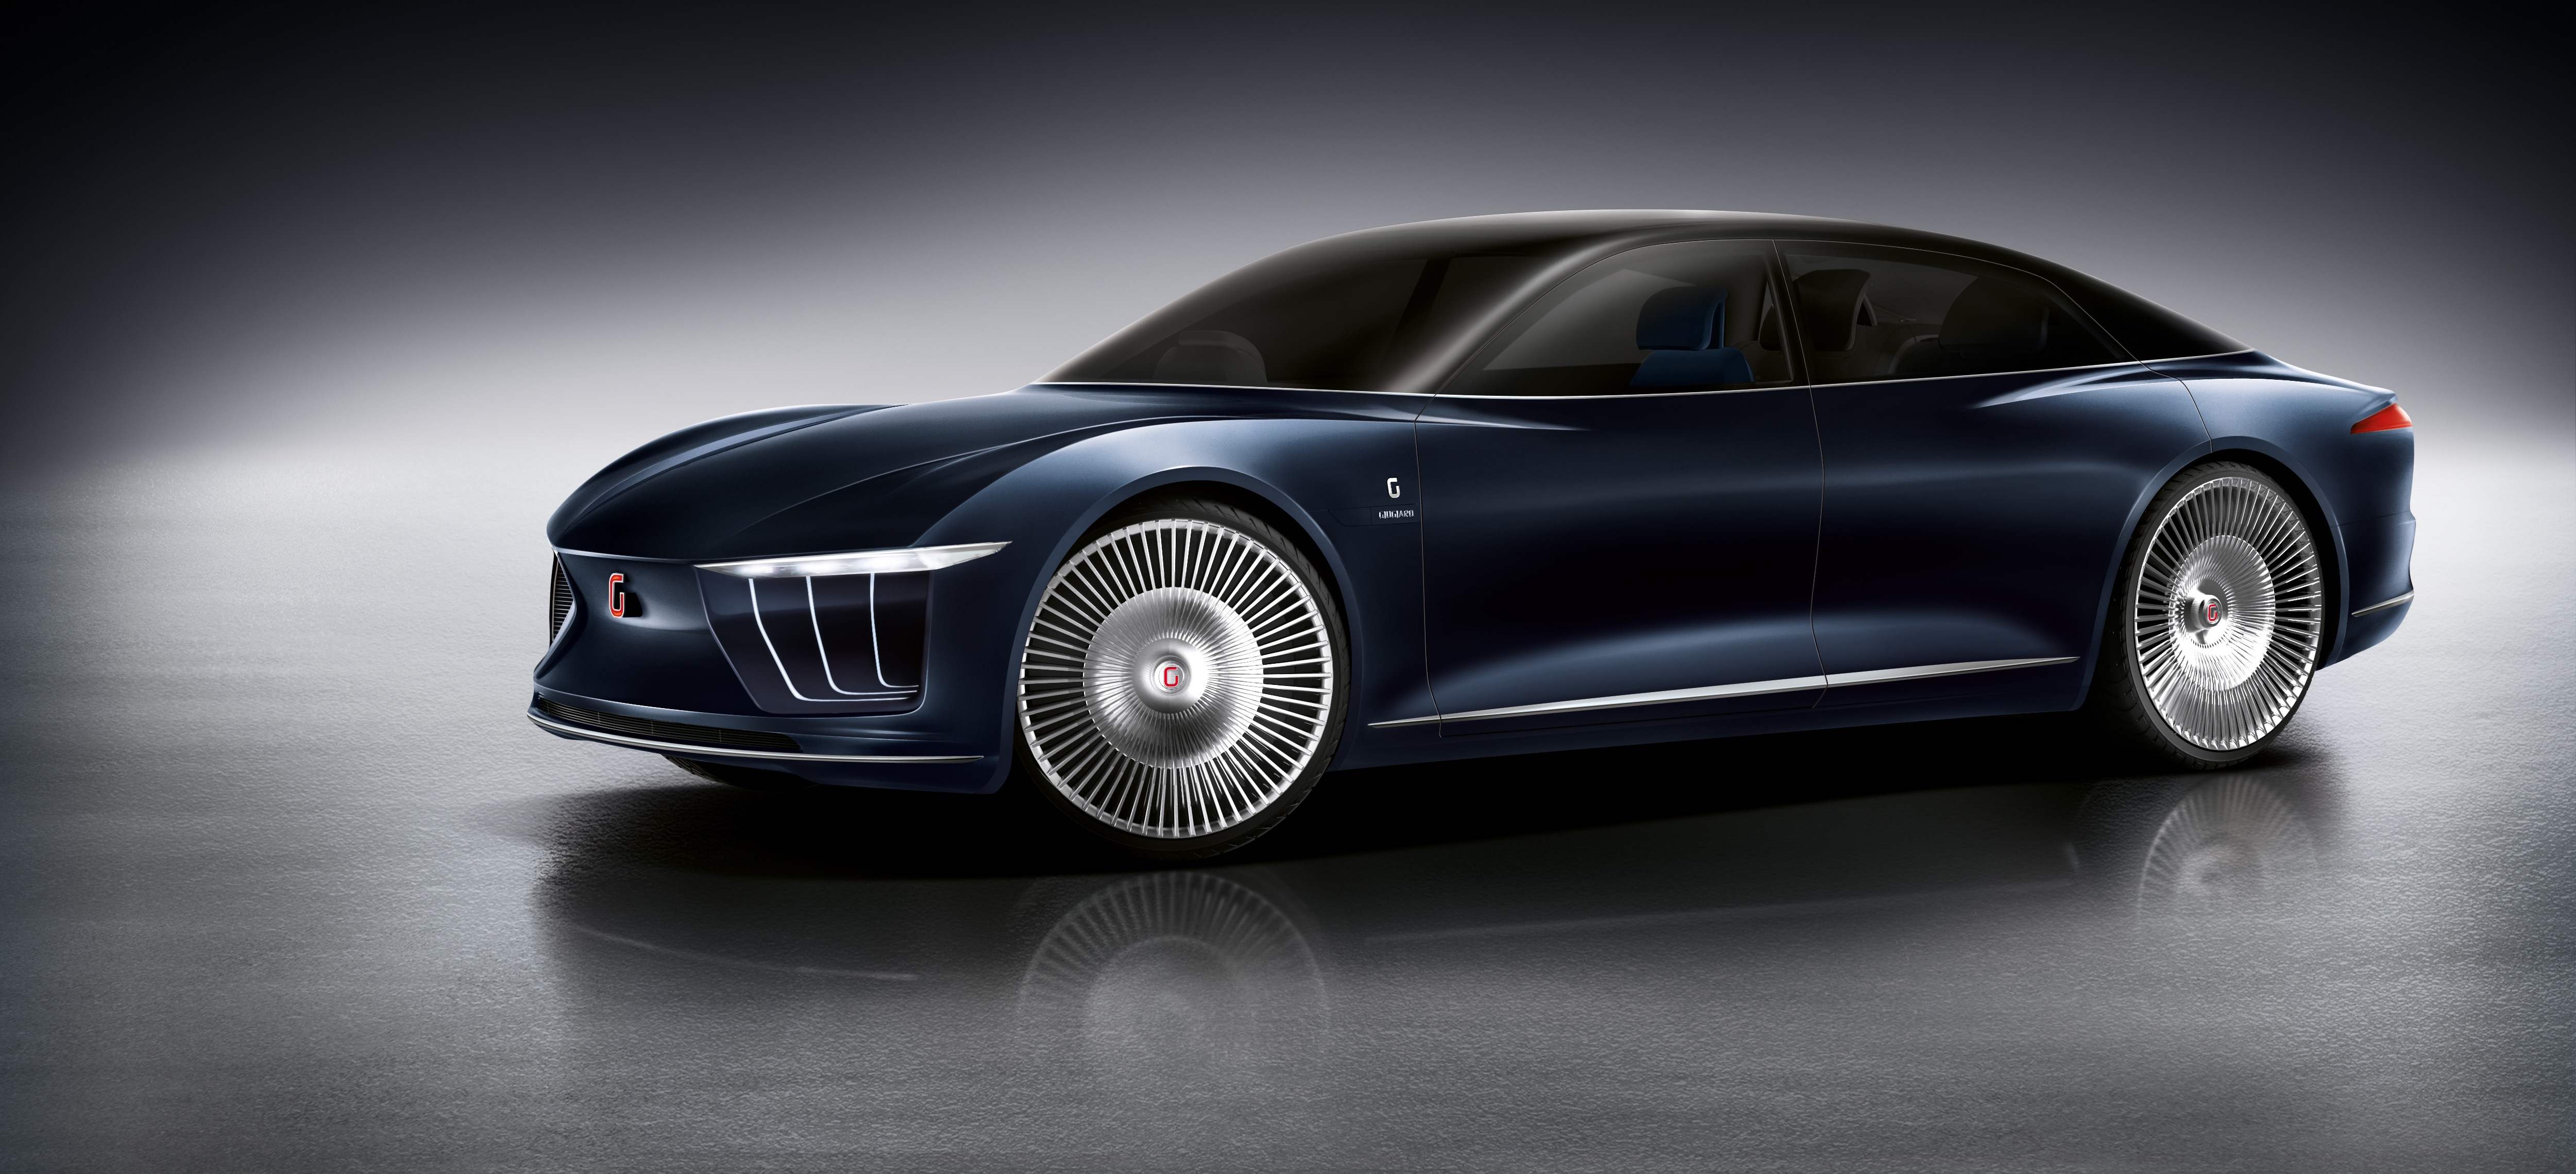 "LG Electronics said it has provided electronic parts to a concept car ""GEA"" made by Italdesign Giugiaro, a design arm of Germany's Volkswagen Group. (image: LG Electronics)"